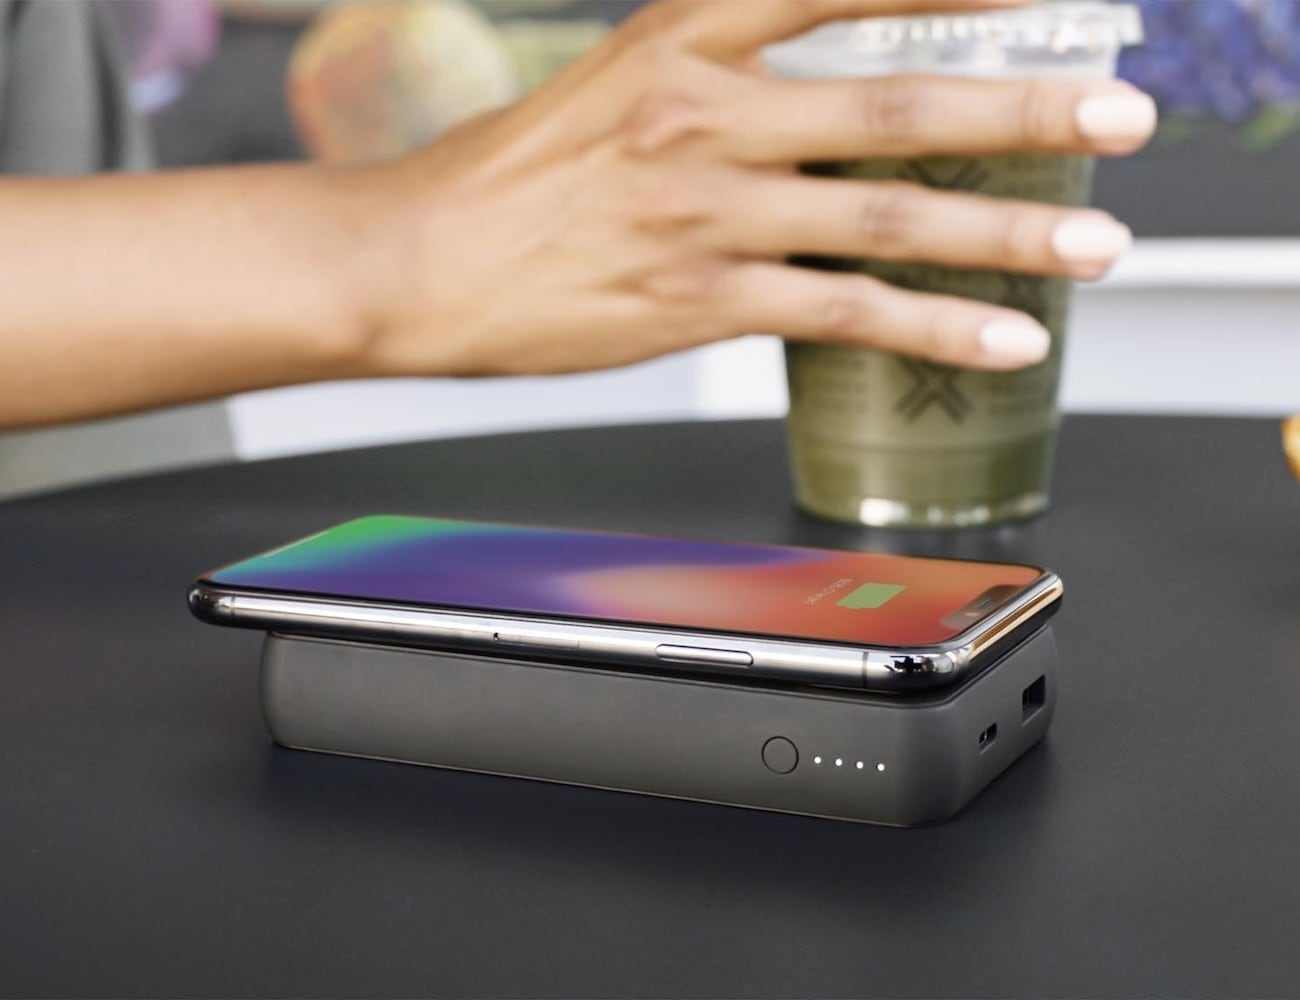 mophie charge stream powerstation wireless XL 10,000 mAh Power Bank lets you charge anywhere